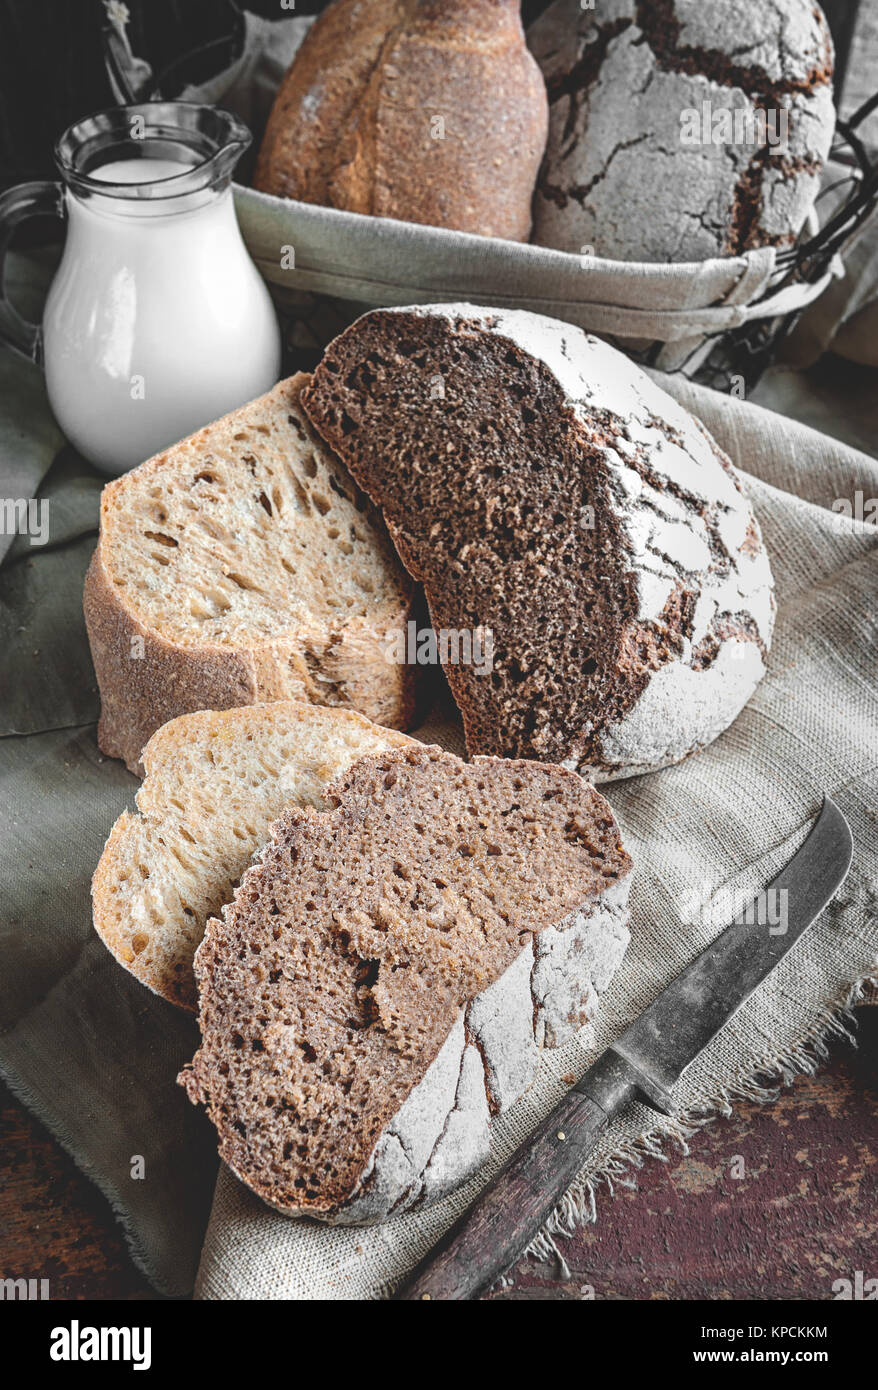 A beautiful loaf of rye farm sourdough bread is handmade. Close-up. - Stock Image